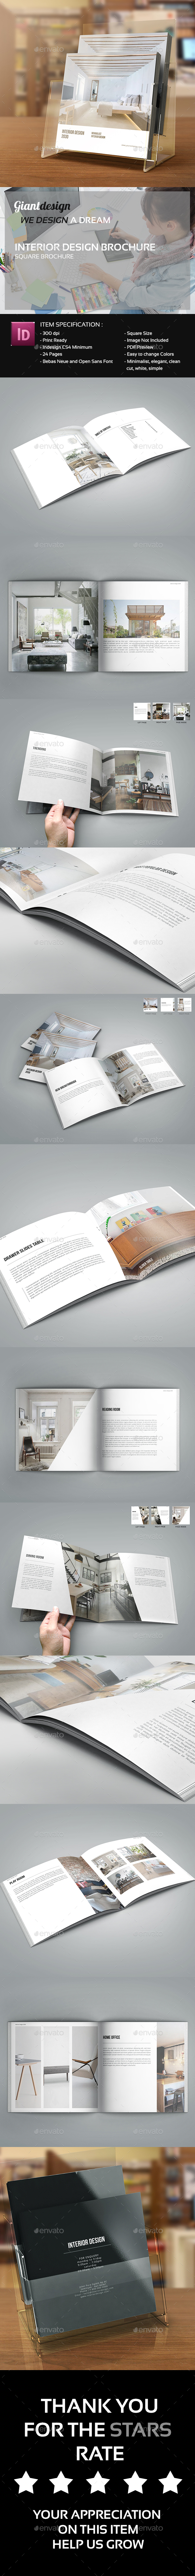 Interior Design - Square Brochure Catalog - Corporate Brochures